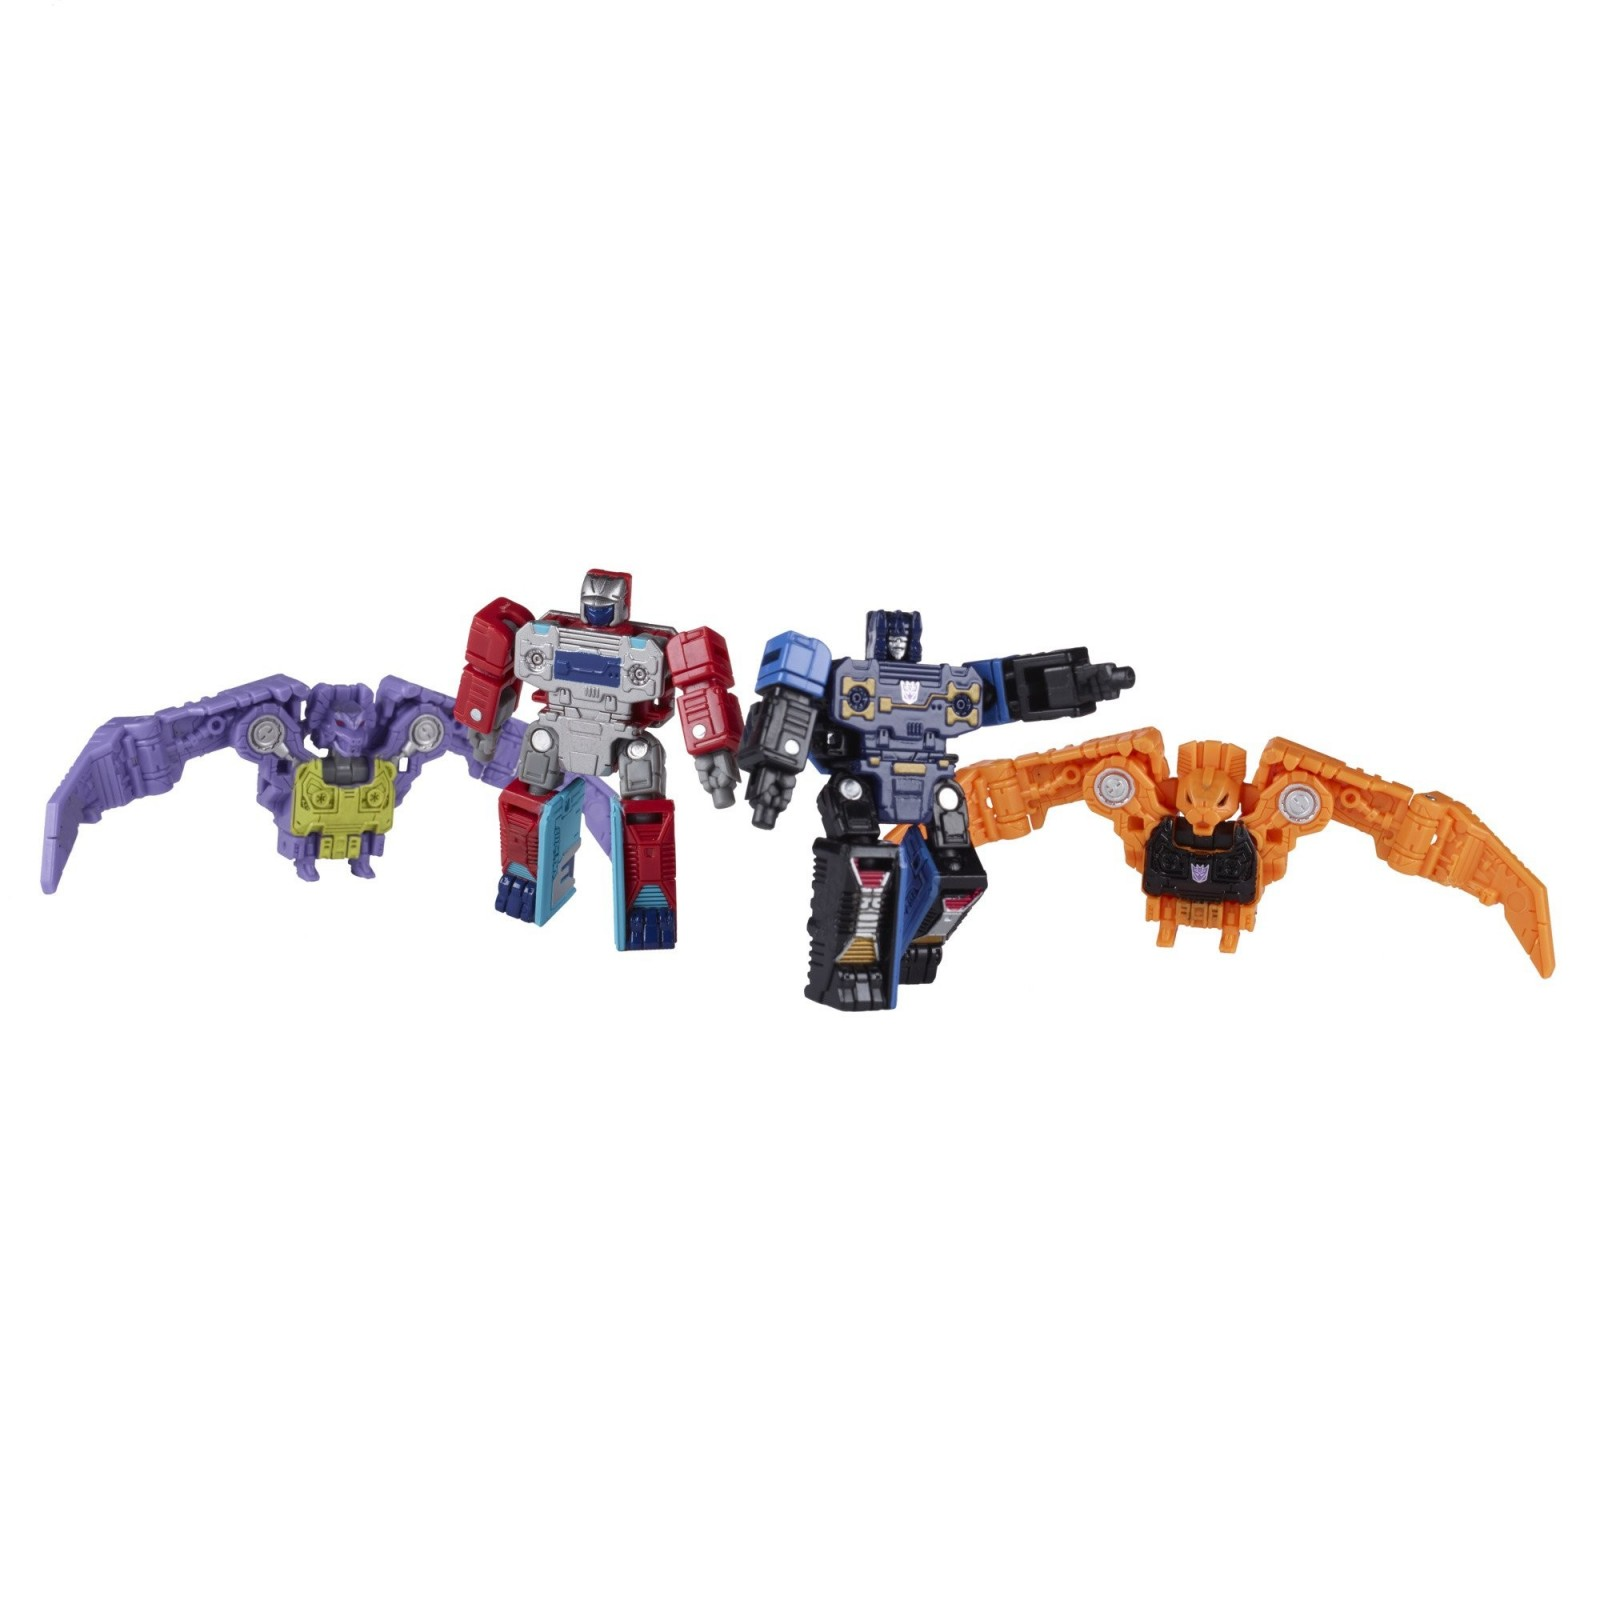 Transformers News: Notes on Transformers Panel at 2020 Toyfair #HasbroToyFair